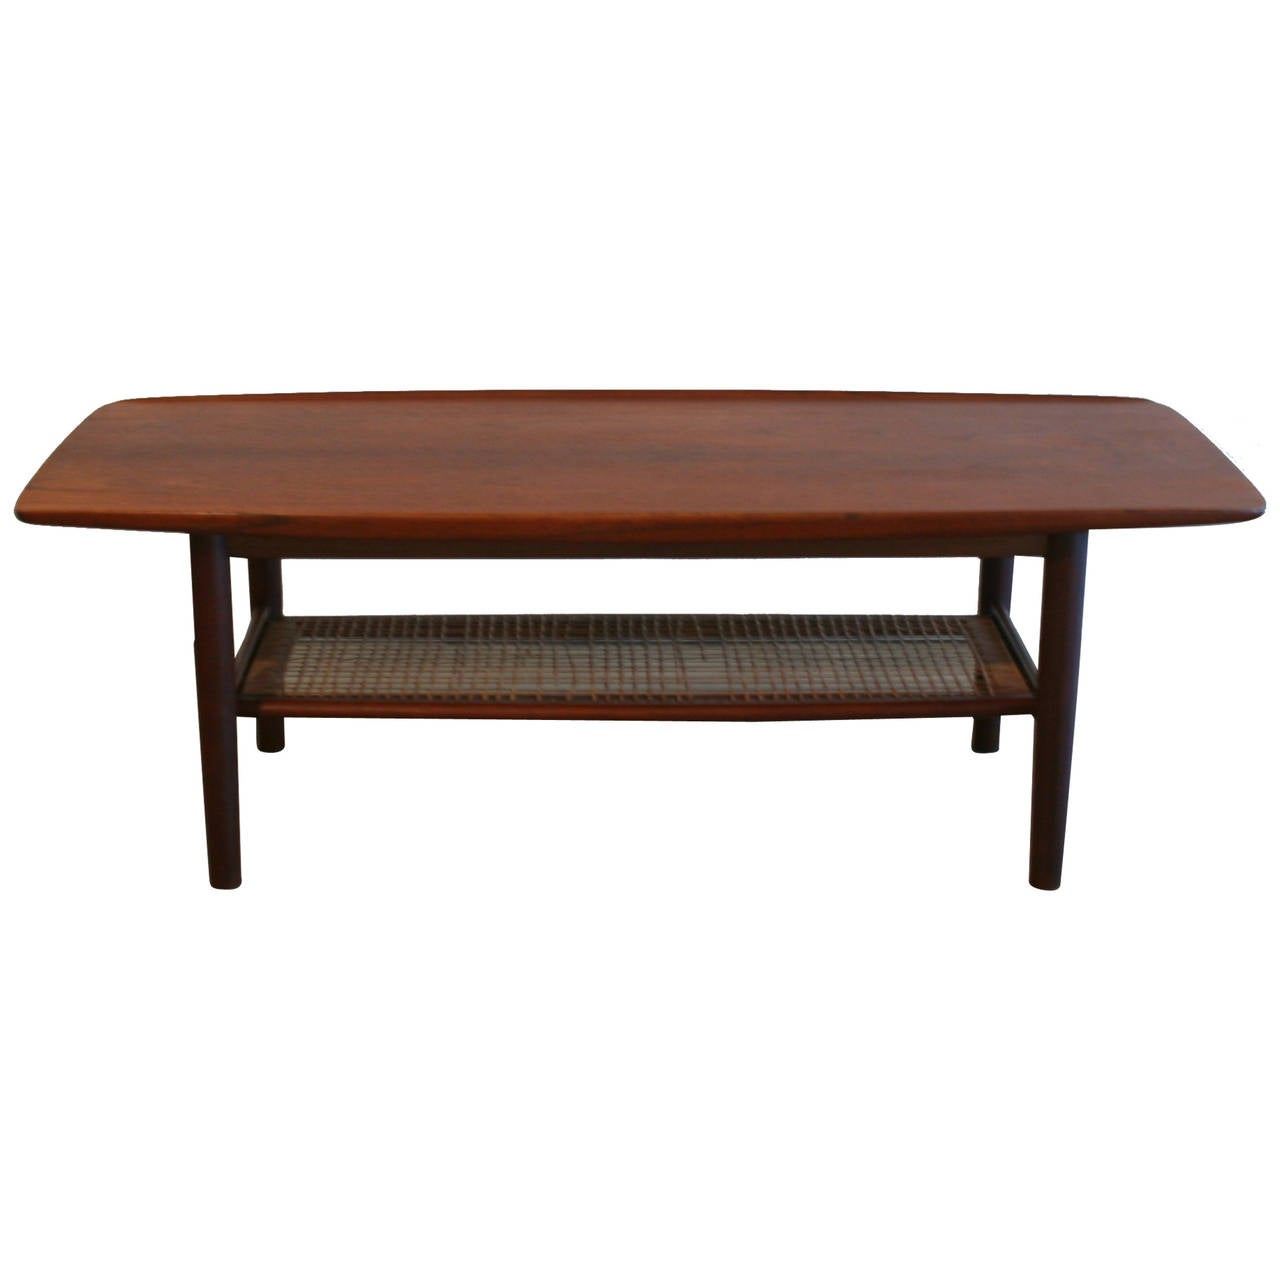 Vintage danish teak and cane coffee table at 1stdibs - Archives departementales 33 tables decennales ...